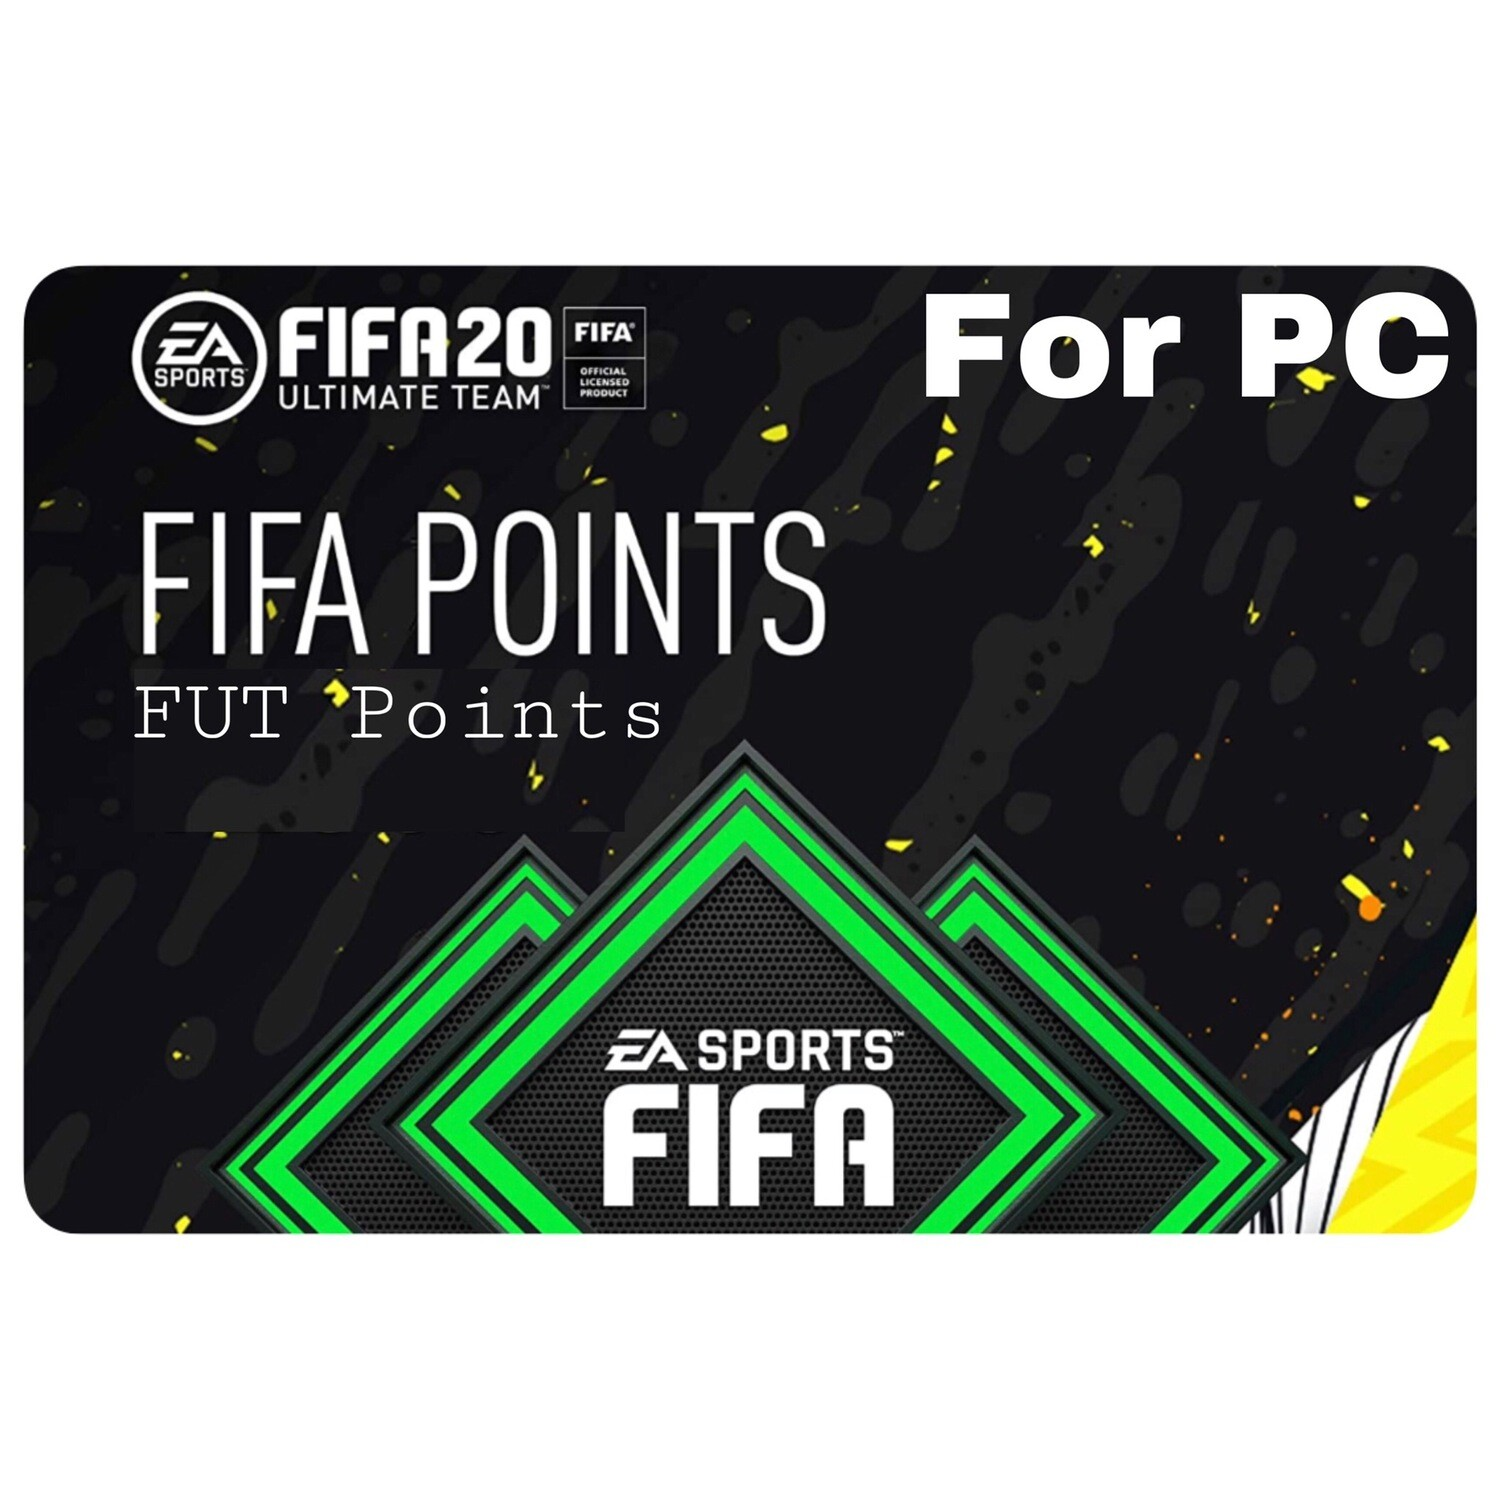 FIFA 20 FUT Points Ultimate Team for PC region US